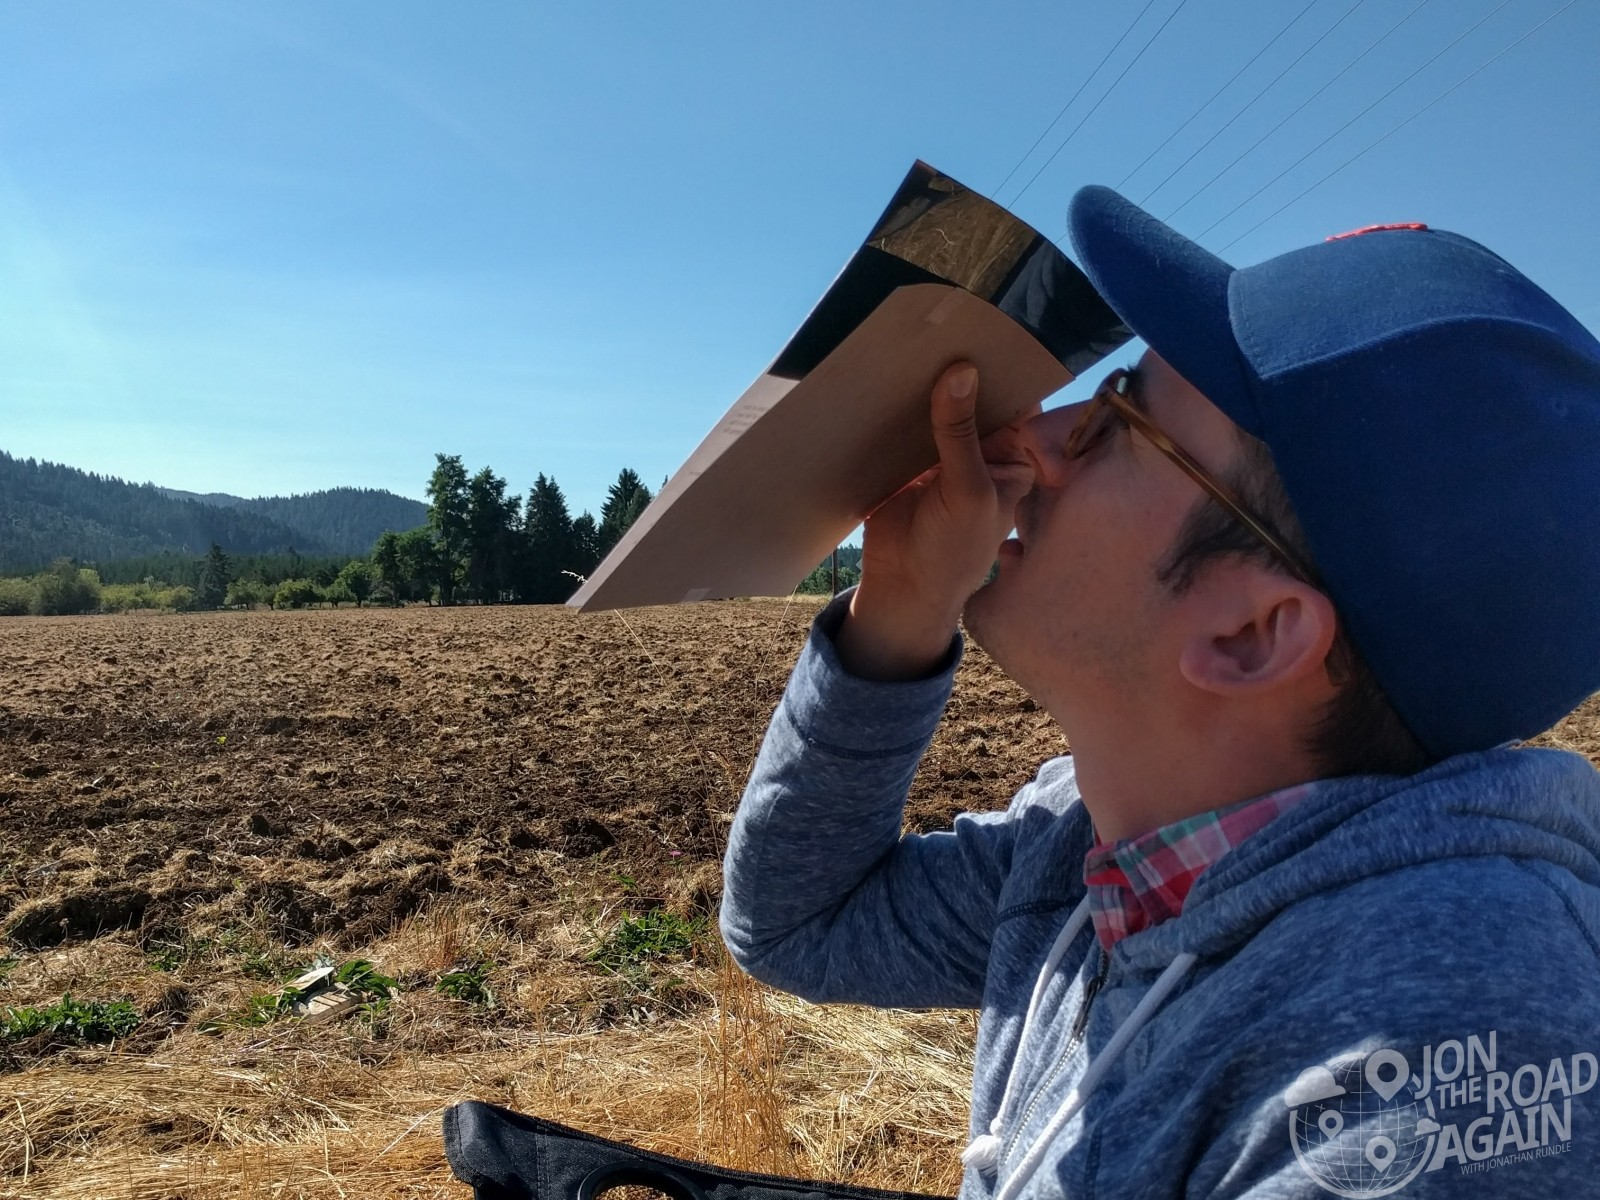 Jonathan looks at the eclipse